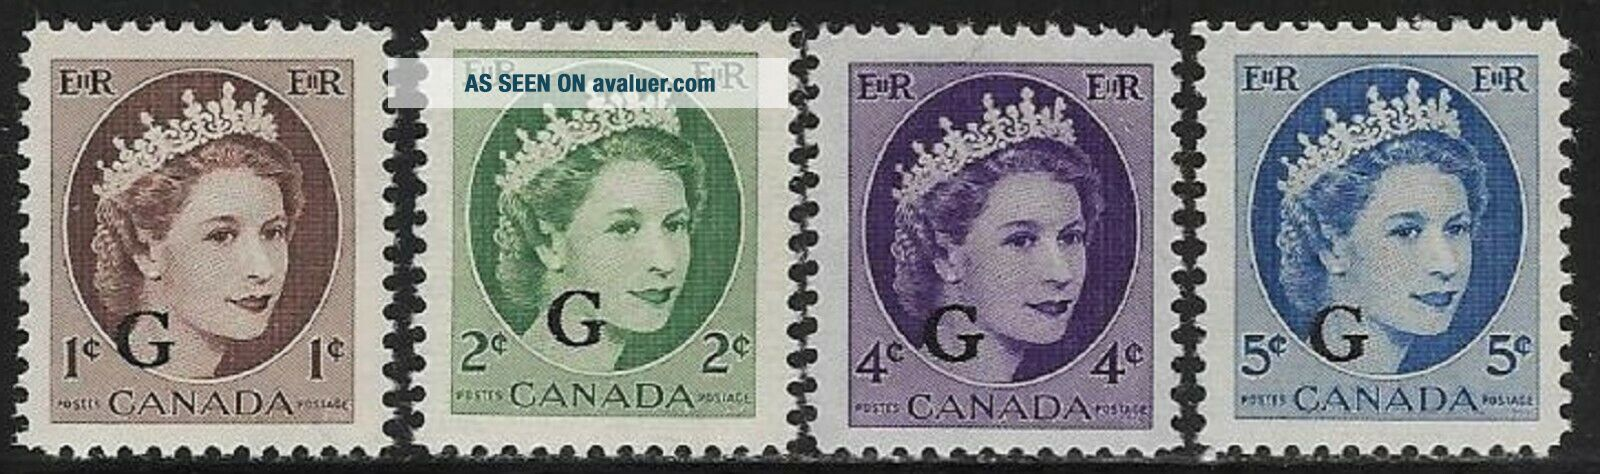 """Canada Overprinted """" G """" Official Stamp QEII MNH O340 - 44 ..."""